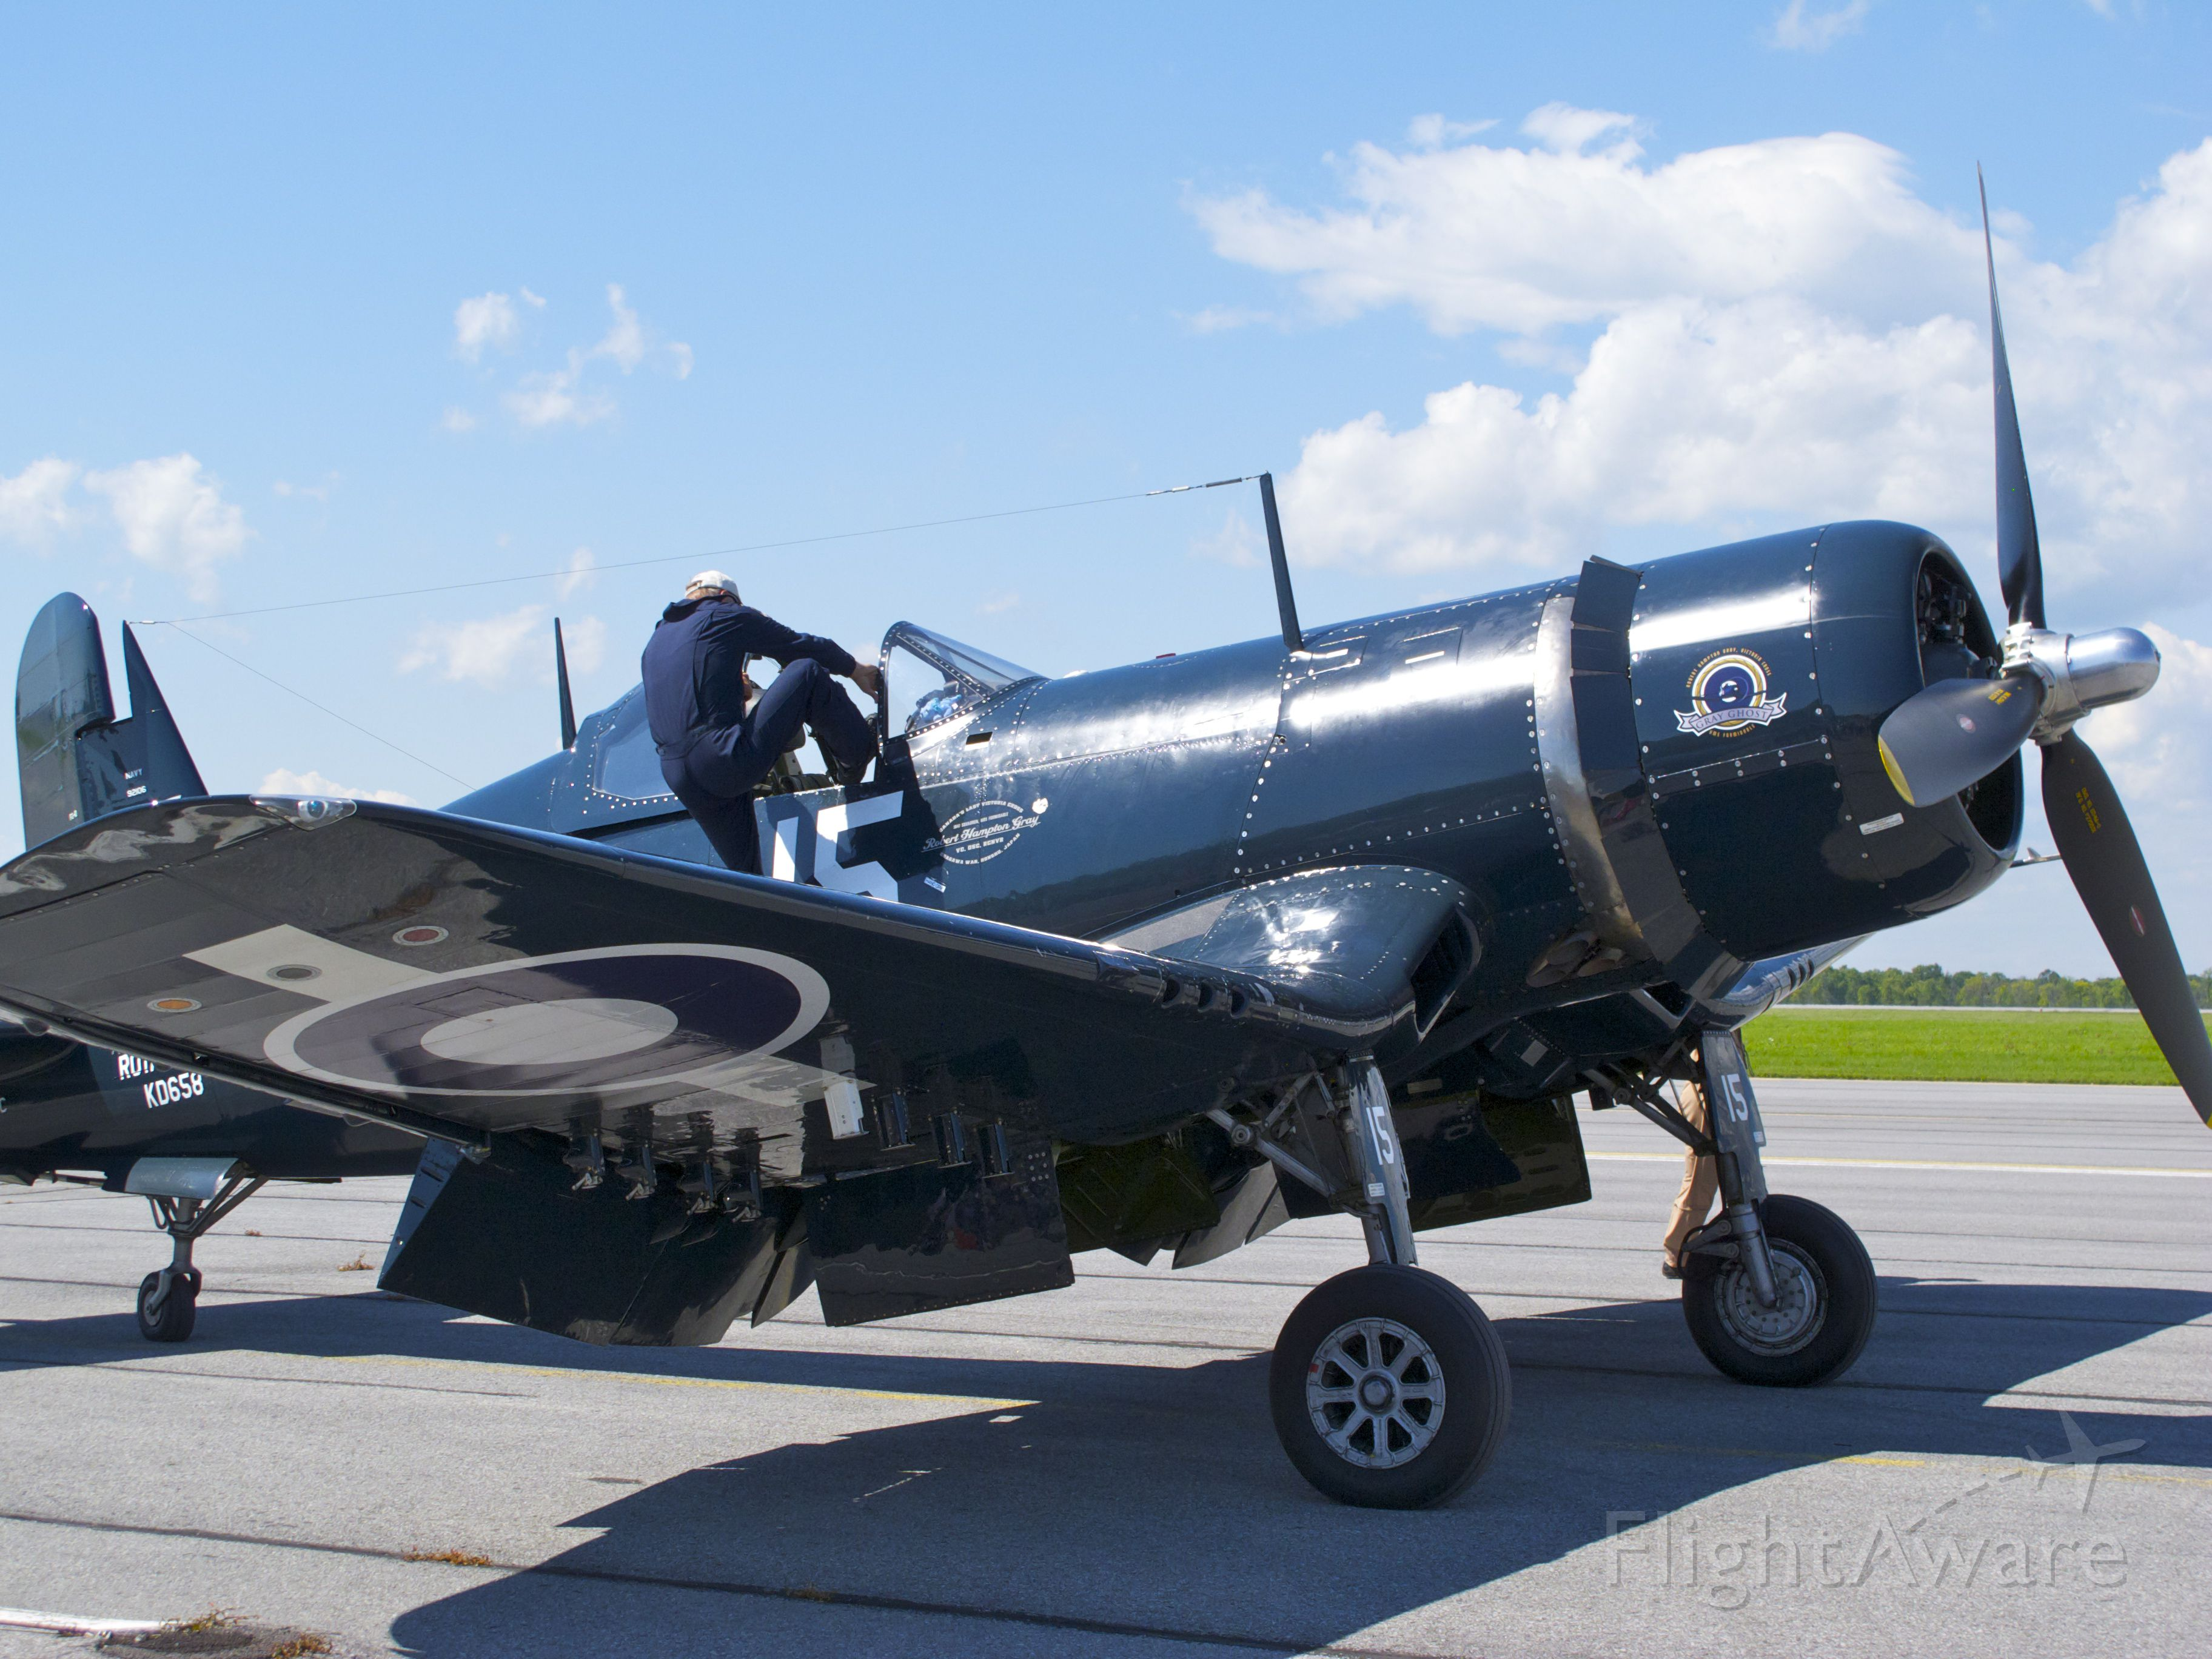 VOUGHT-SIKORSKY V-166 Corsair (C-GVWC) - Goodyear FG-1D Corsair painted in the colours of Victoria Cross recipient Canadian Lt Robert Hampton Gray prepares for flight during a visit by it and other aircraft operated by Vintage Wings of Canada to Kingston, Ontario in late August 2011